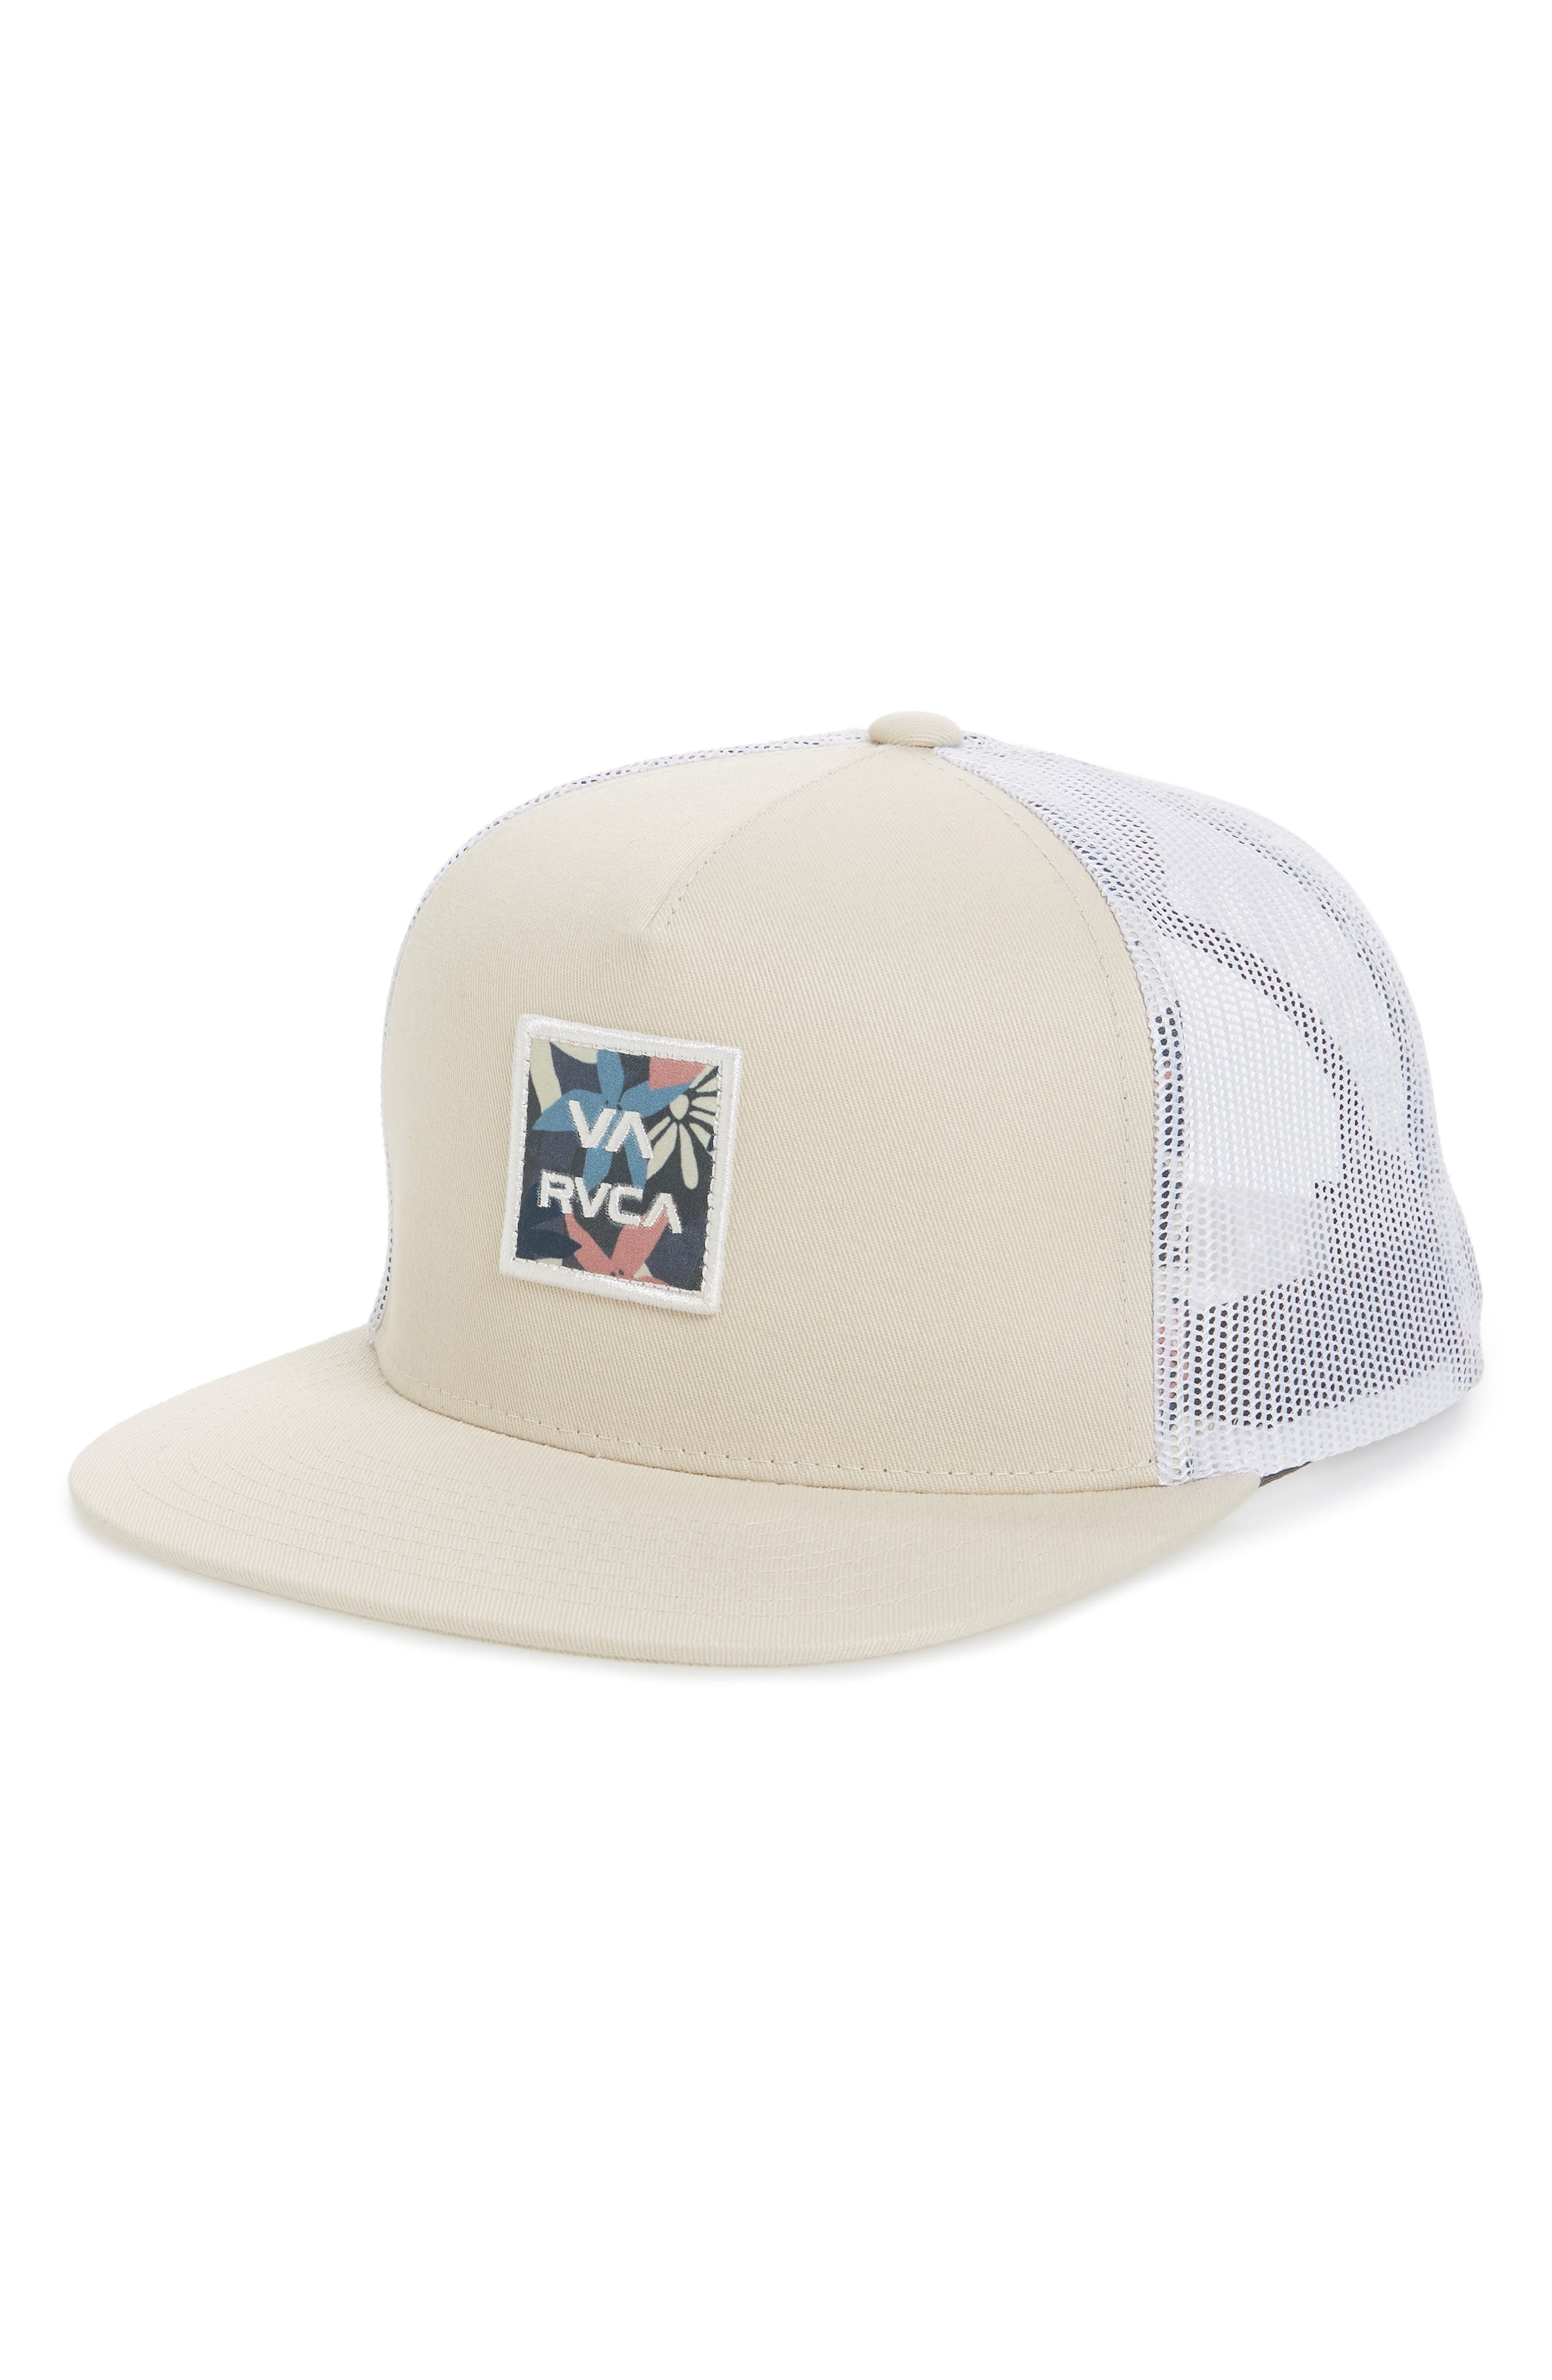 a33aba06afb30 ... netherlands rvca va all the way trucker hat 579ab d6206